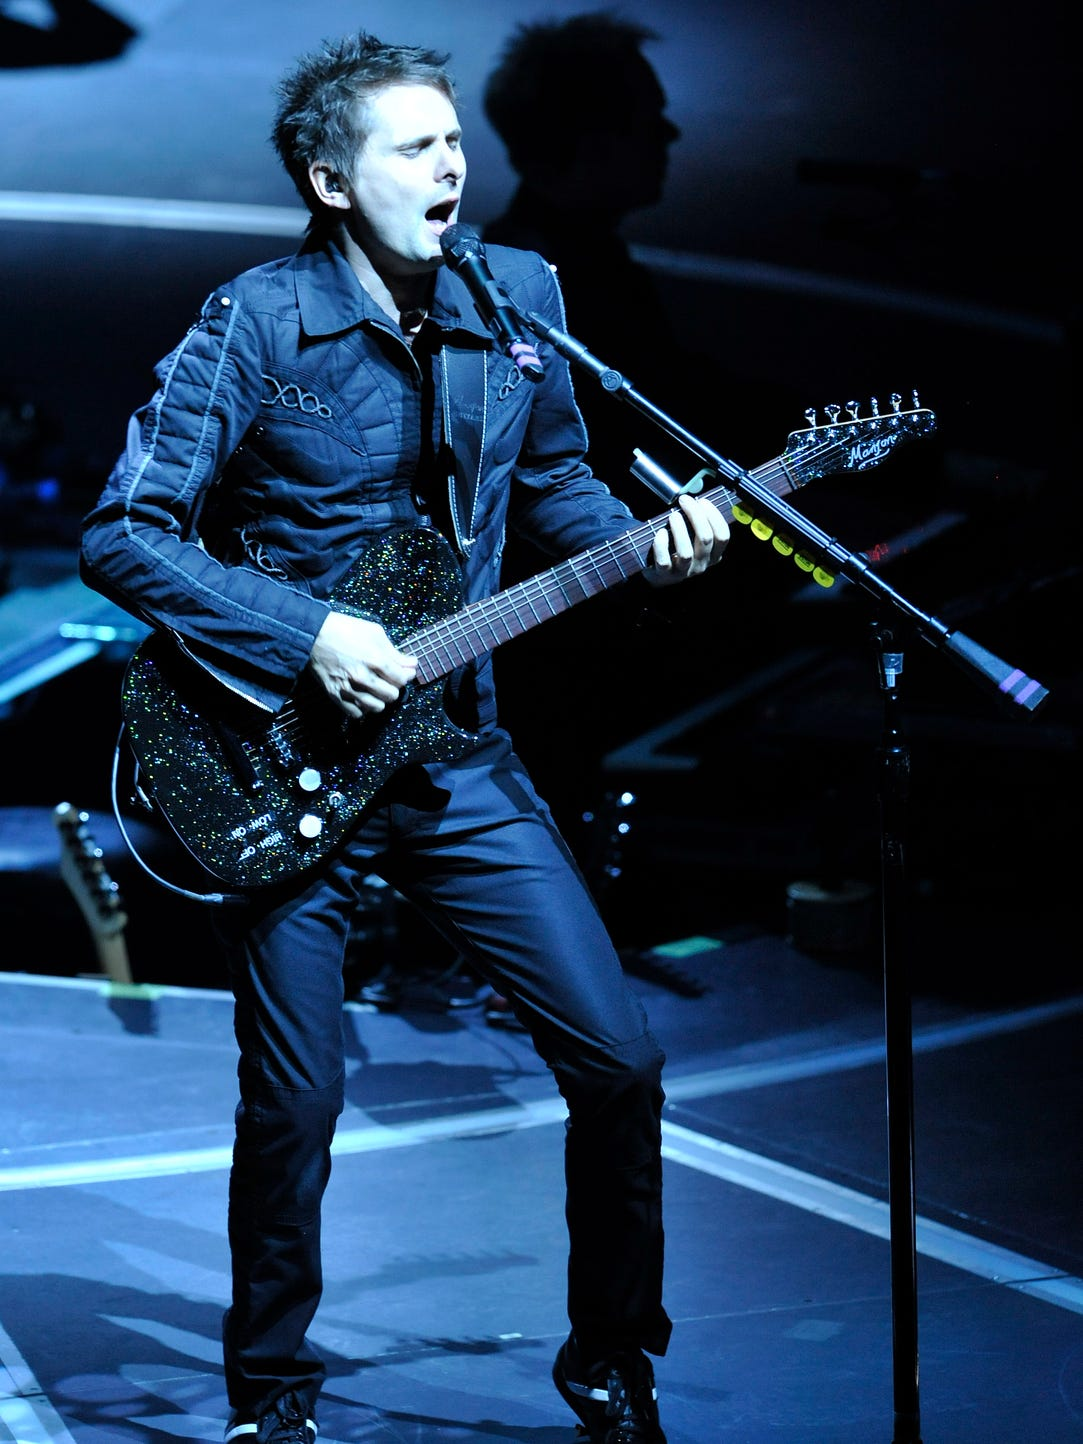 Matt Bellamy, lead singer and guitarist of Muse performs